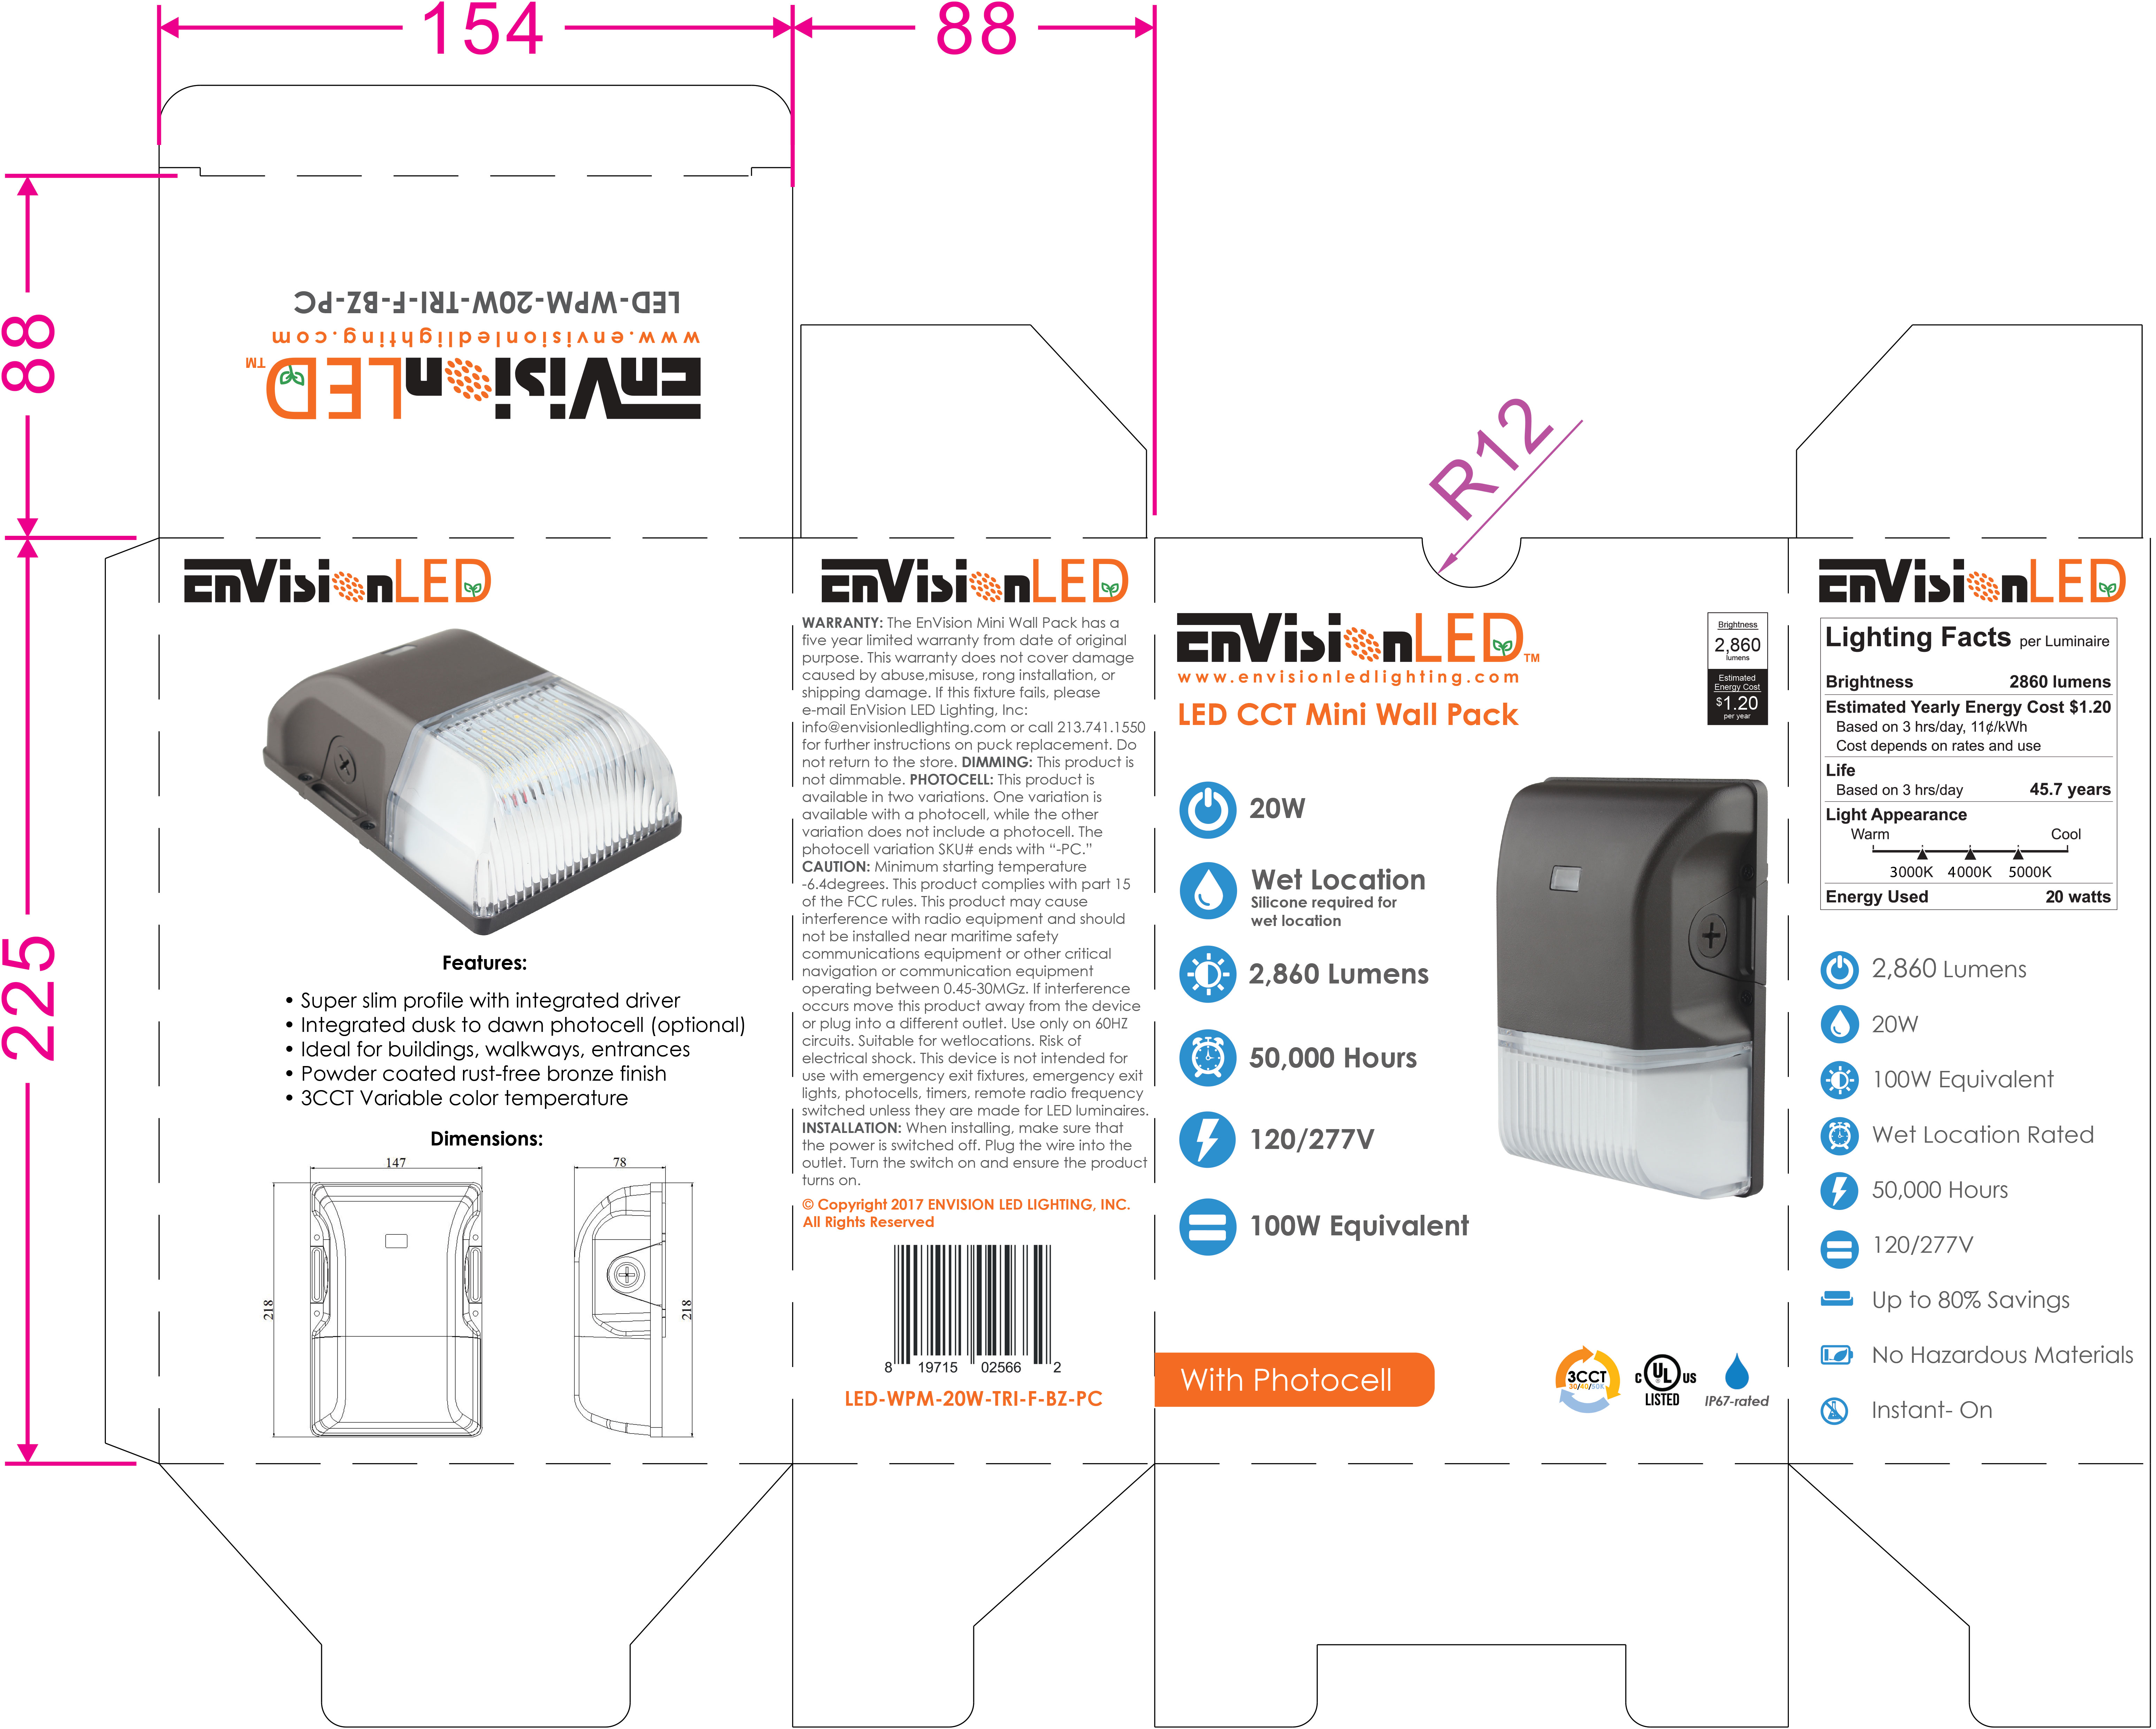 wall_pack_packaging_file